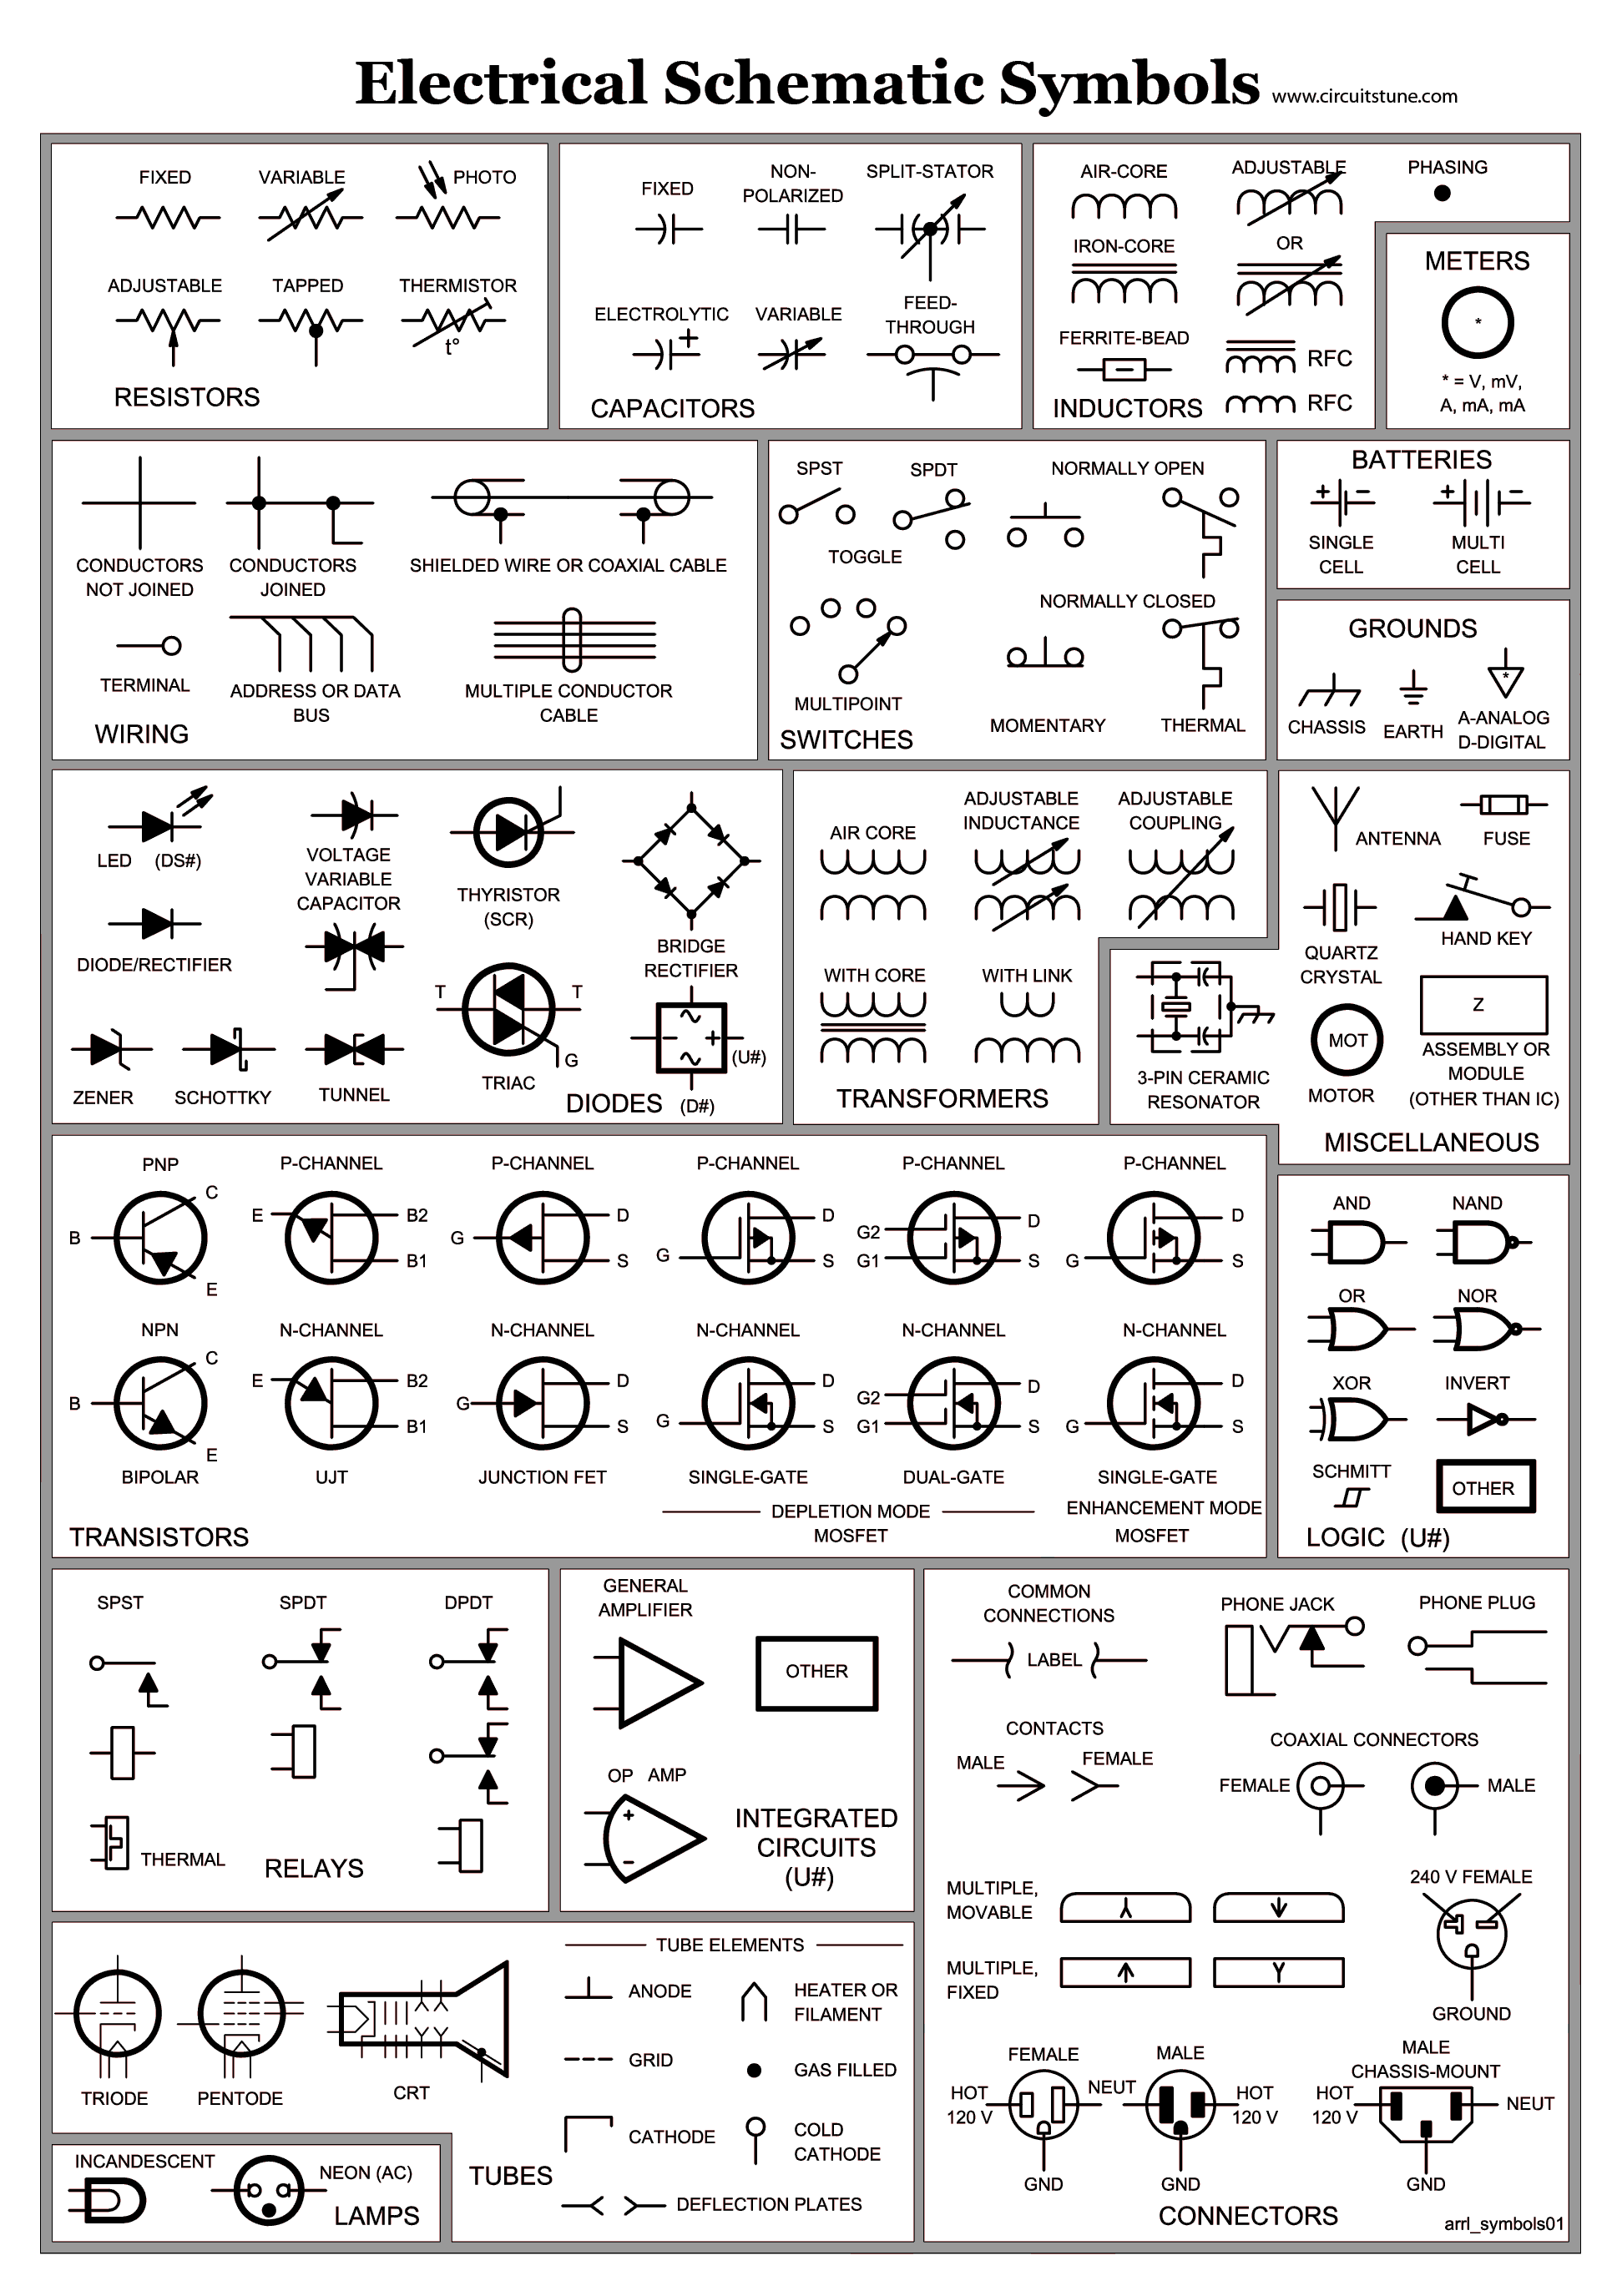 electrical schematic symbols wire diagram symbols automotive wiring rh pinterest com wiring schematic mgha-075abfc-01 wiring schematic m2561 mower